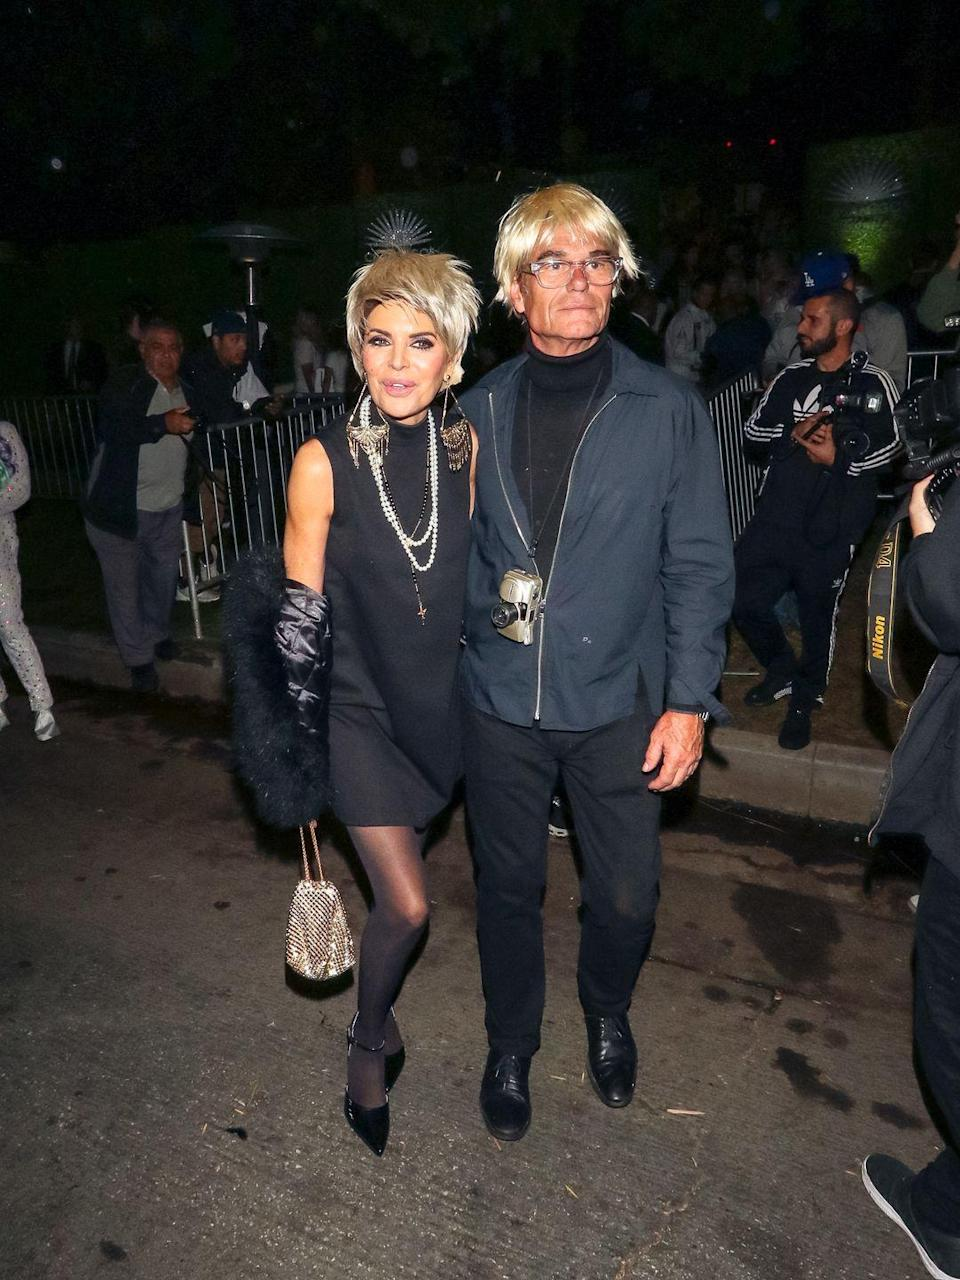 <p>Is Harry Hamlin trying to tell us Lisa Rinna is his muse? We think so.</p>